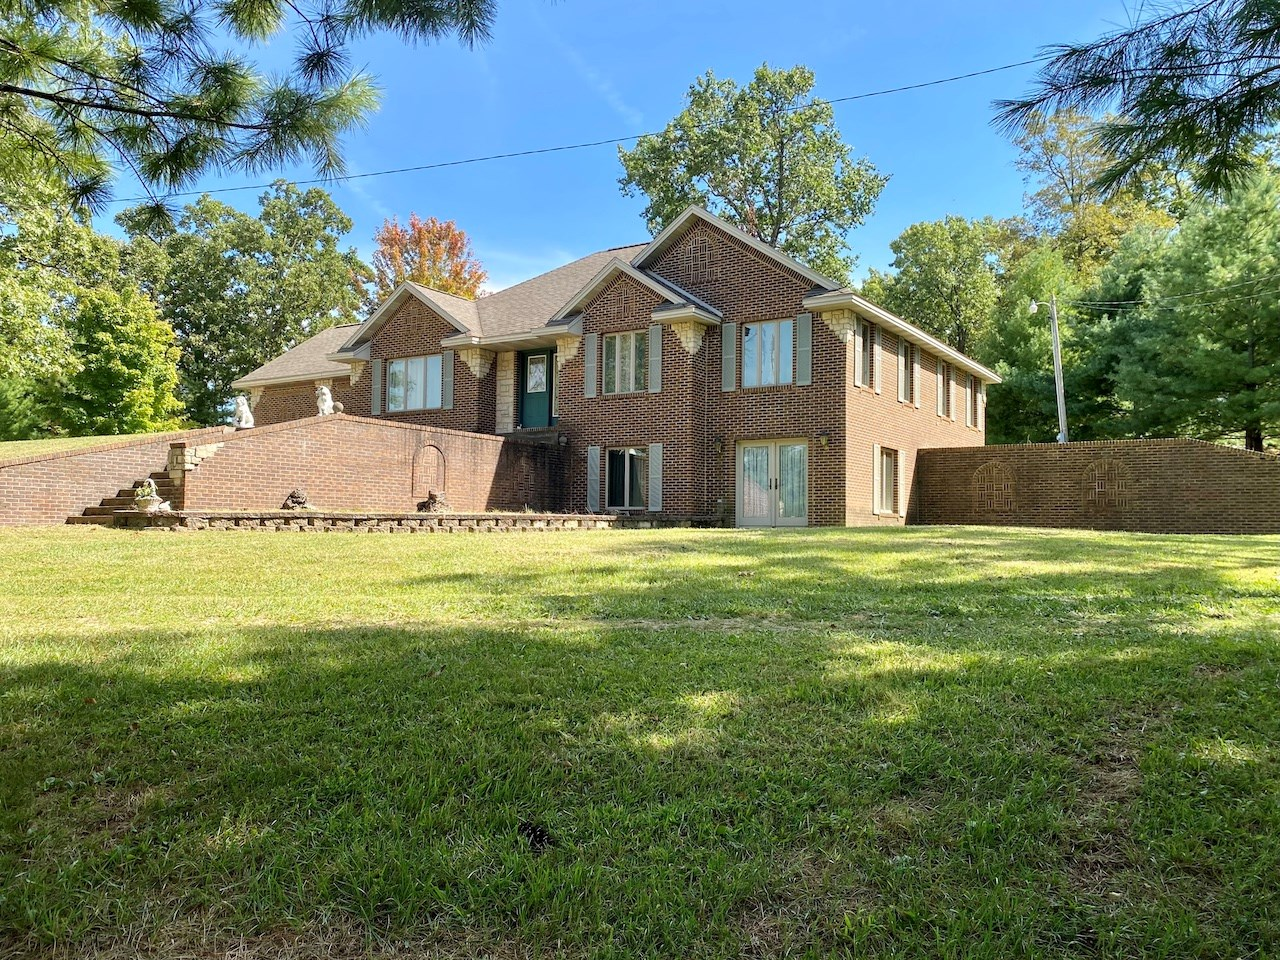 Brick Home with Private Setting for Sale - West Plains, MO